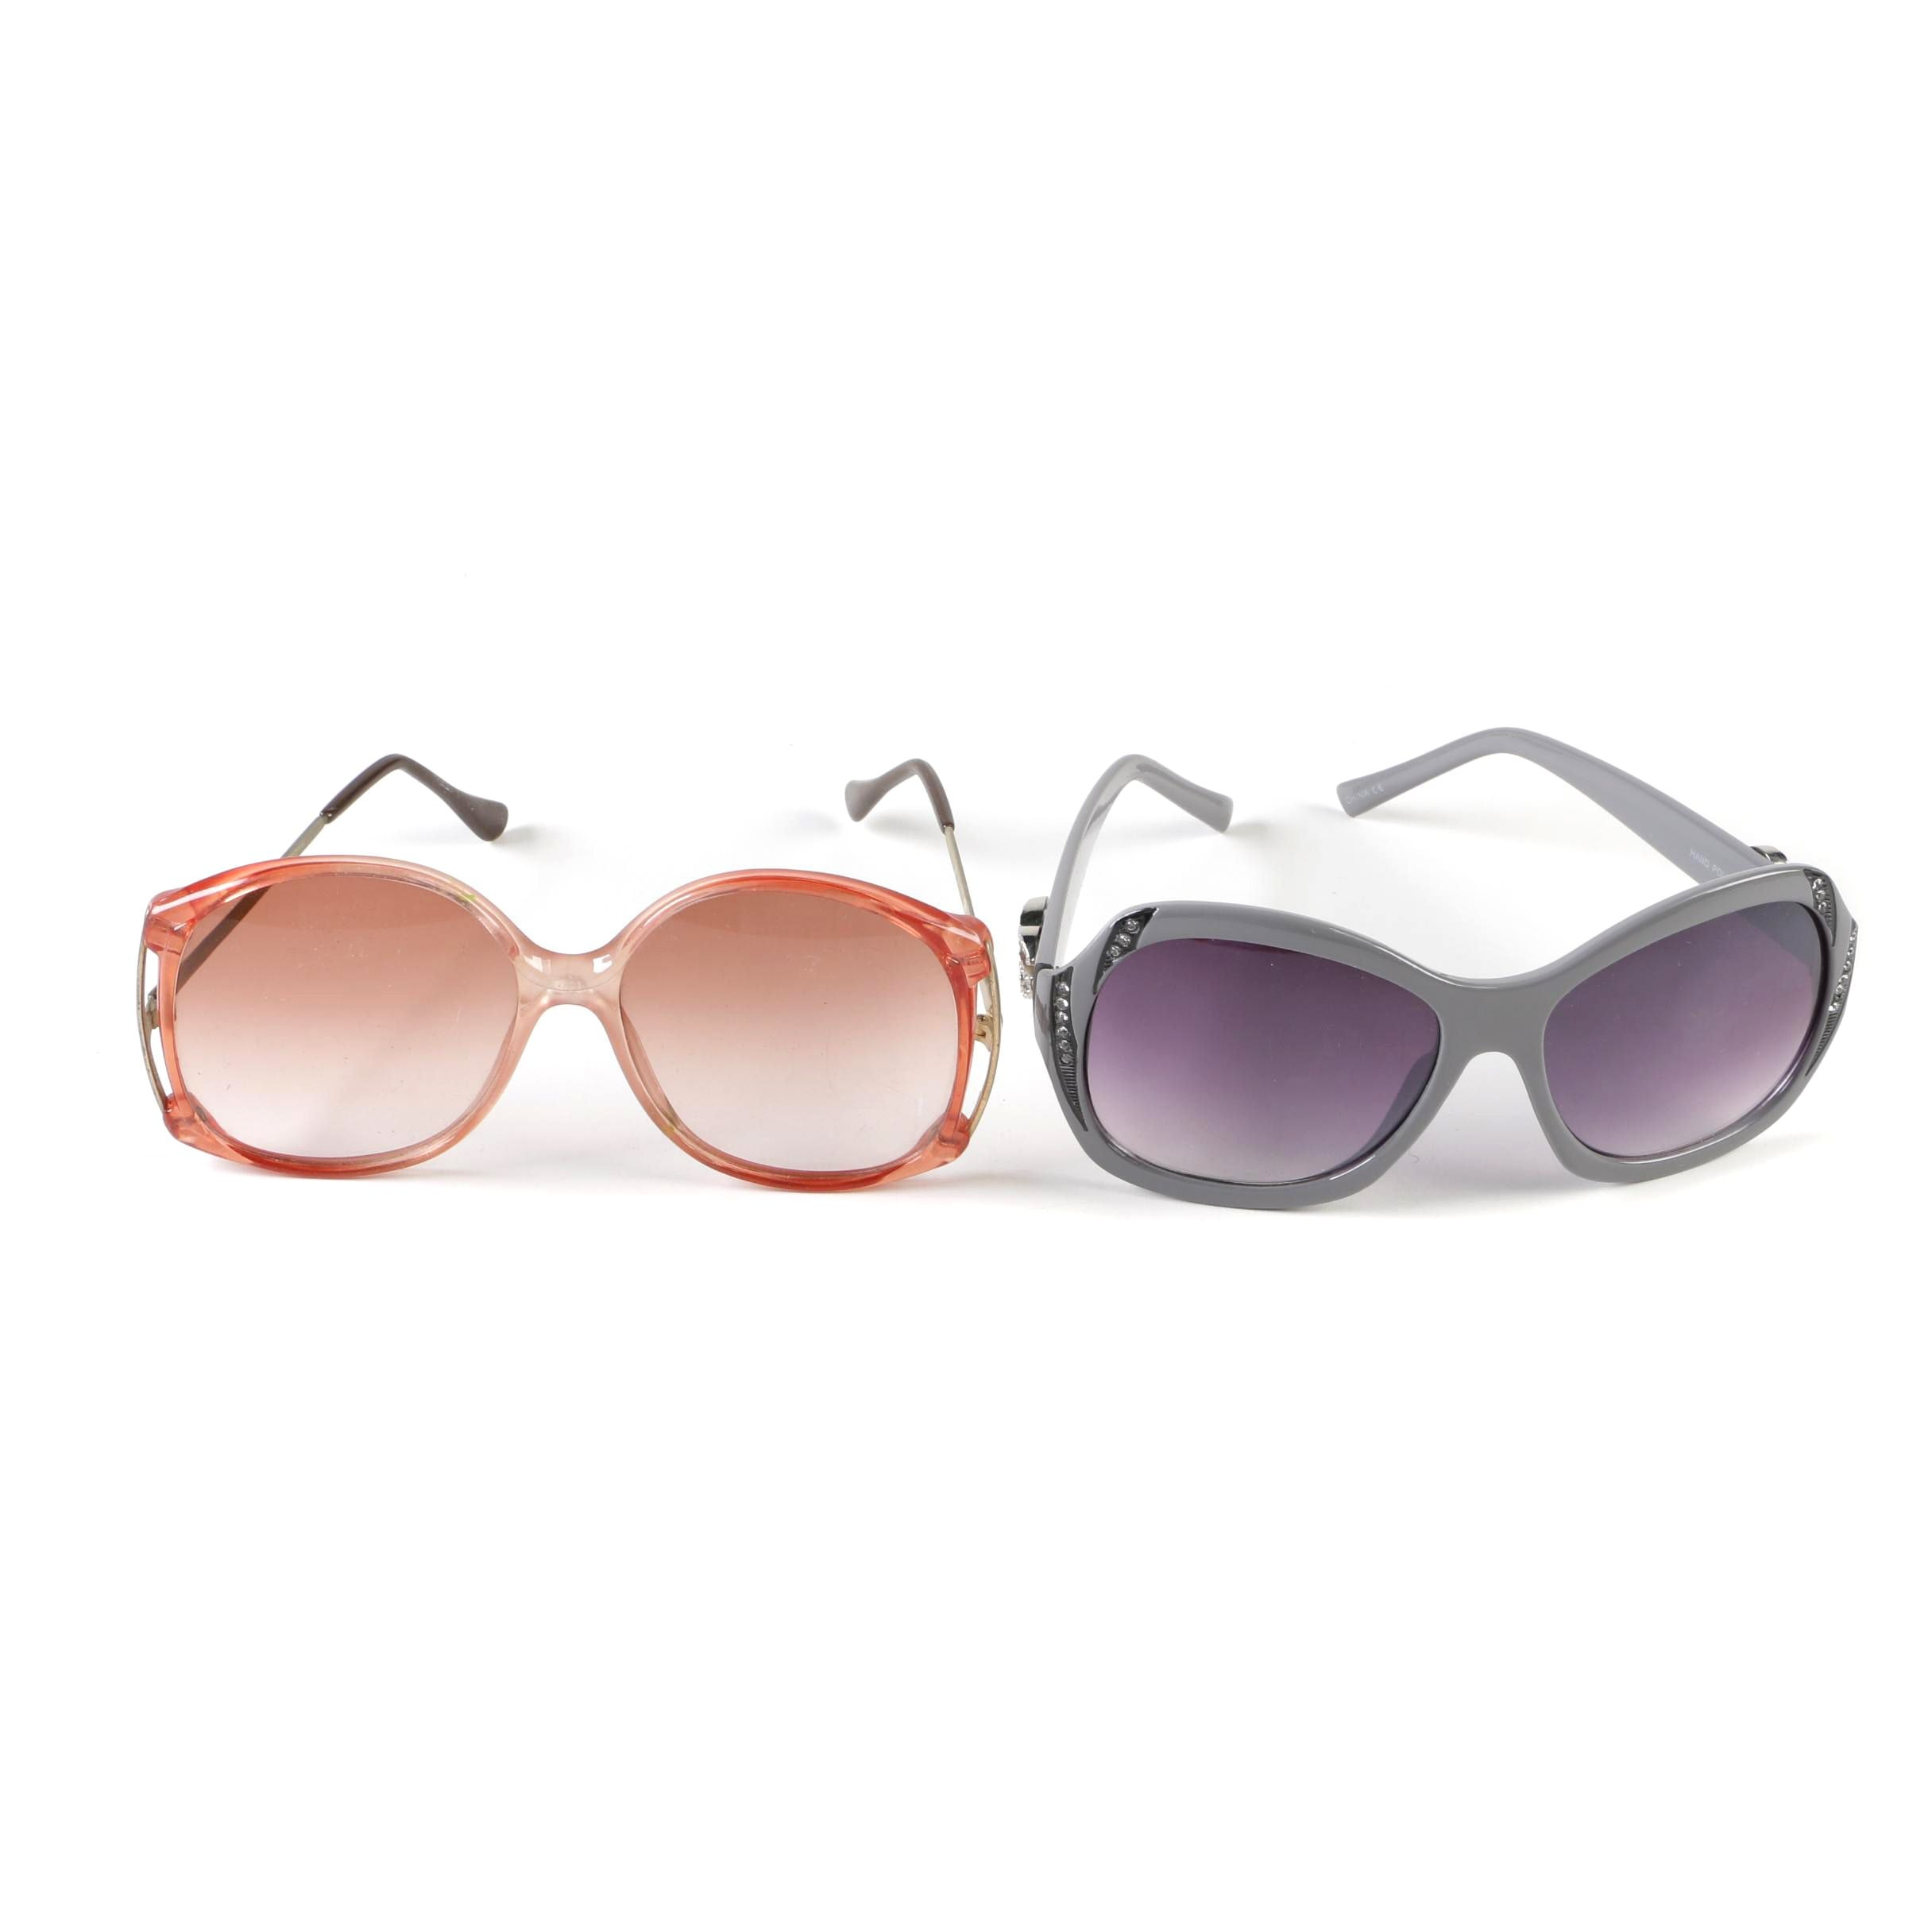 IG and Korean Made Oversized Style Sunglasses